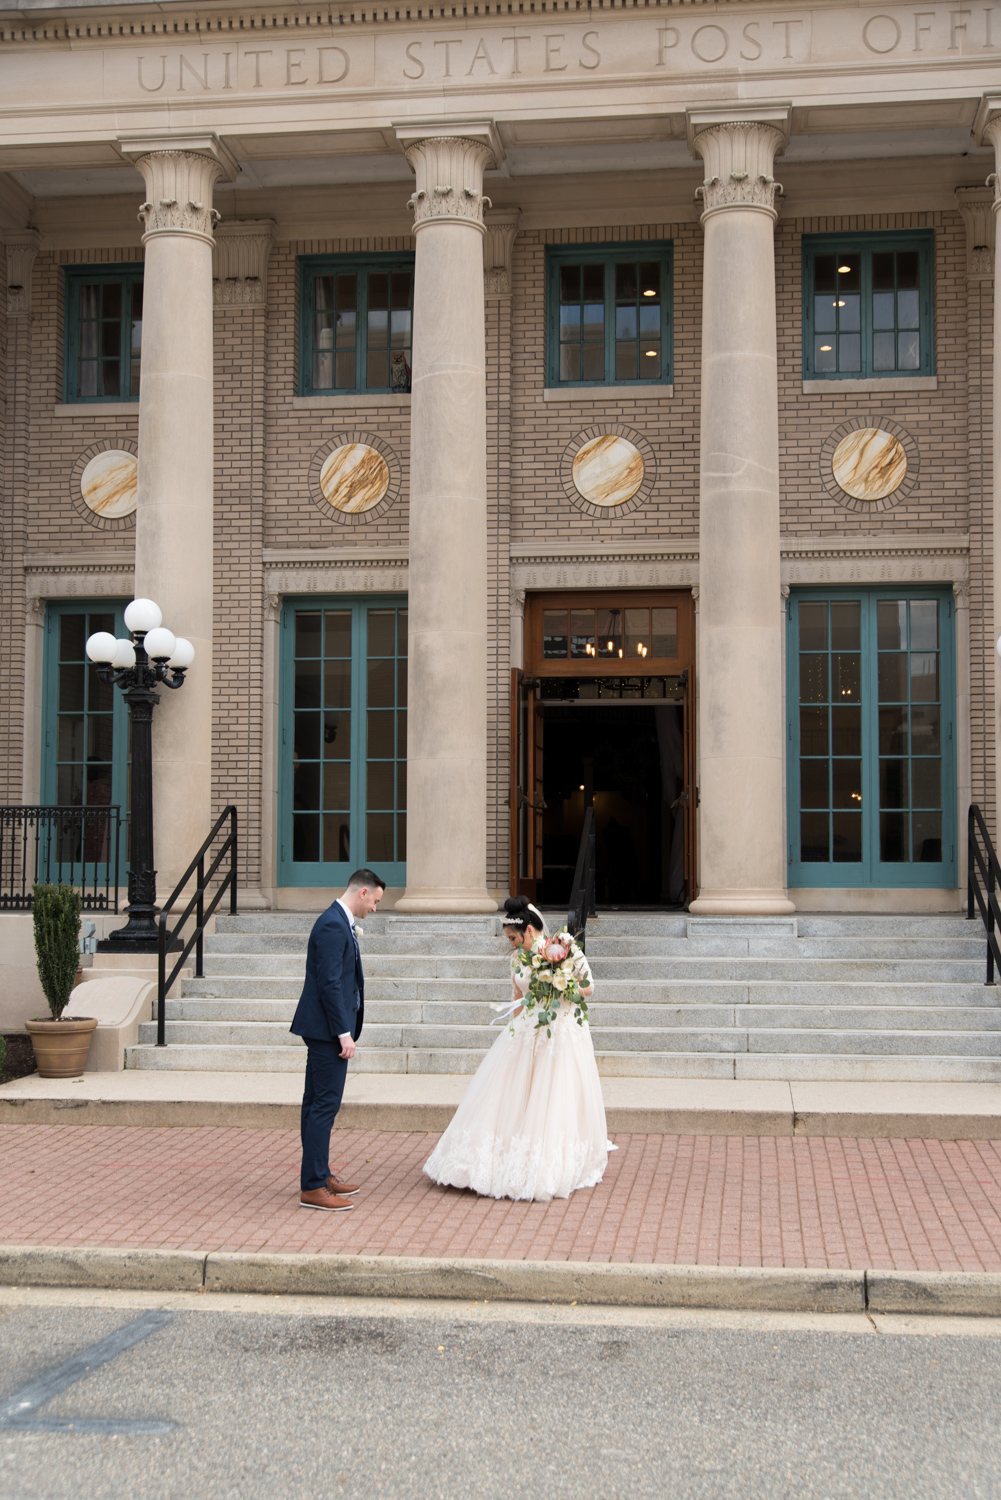 Rose Gold Wedding at Historic Post Office Virginia Harry Potter Themed Wedding-133.JPG